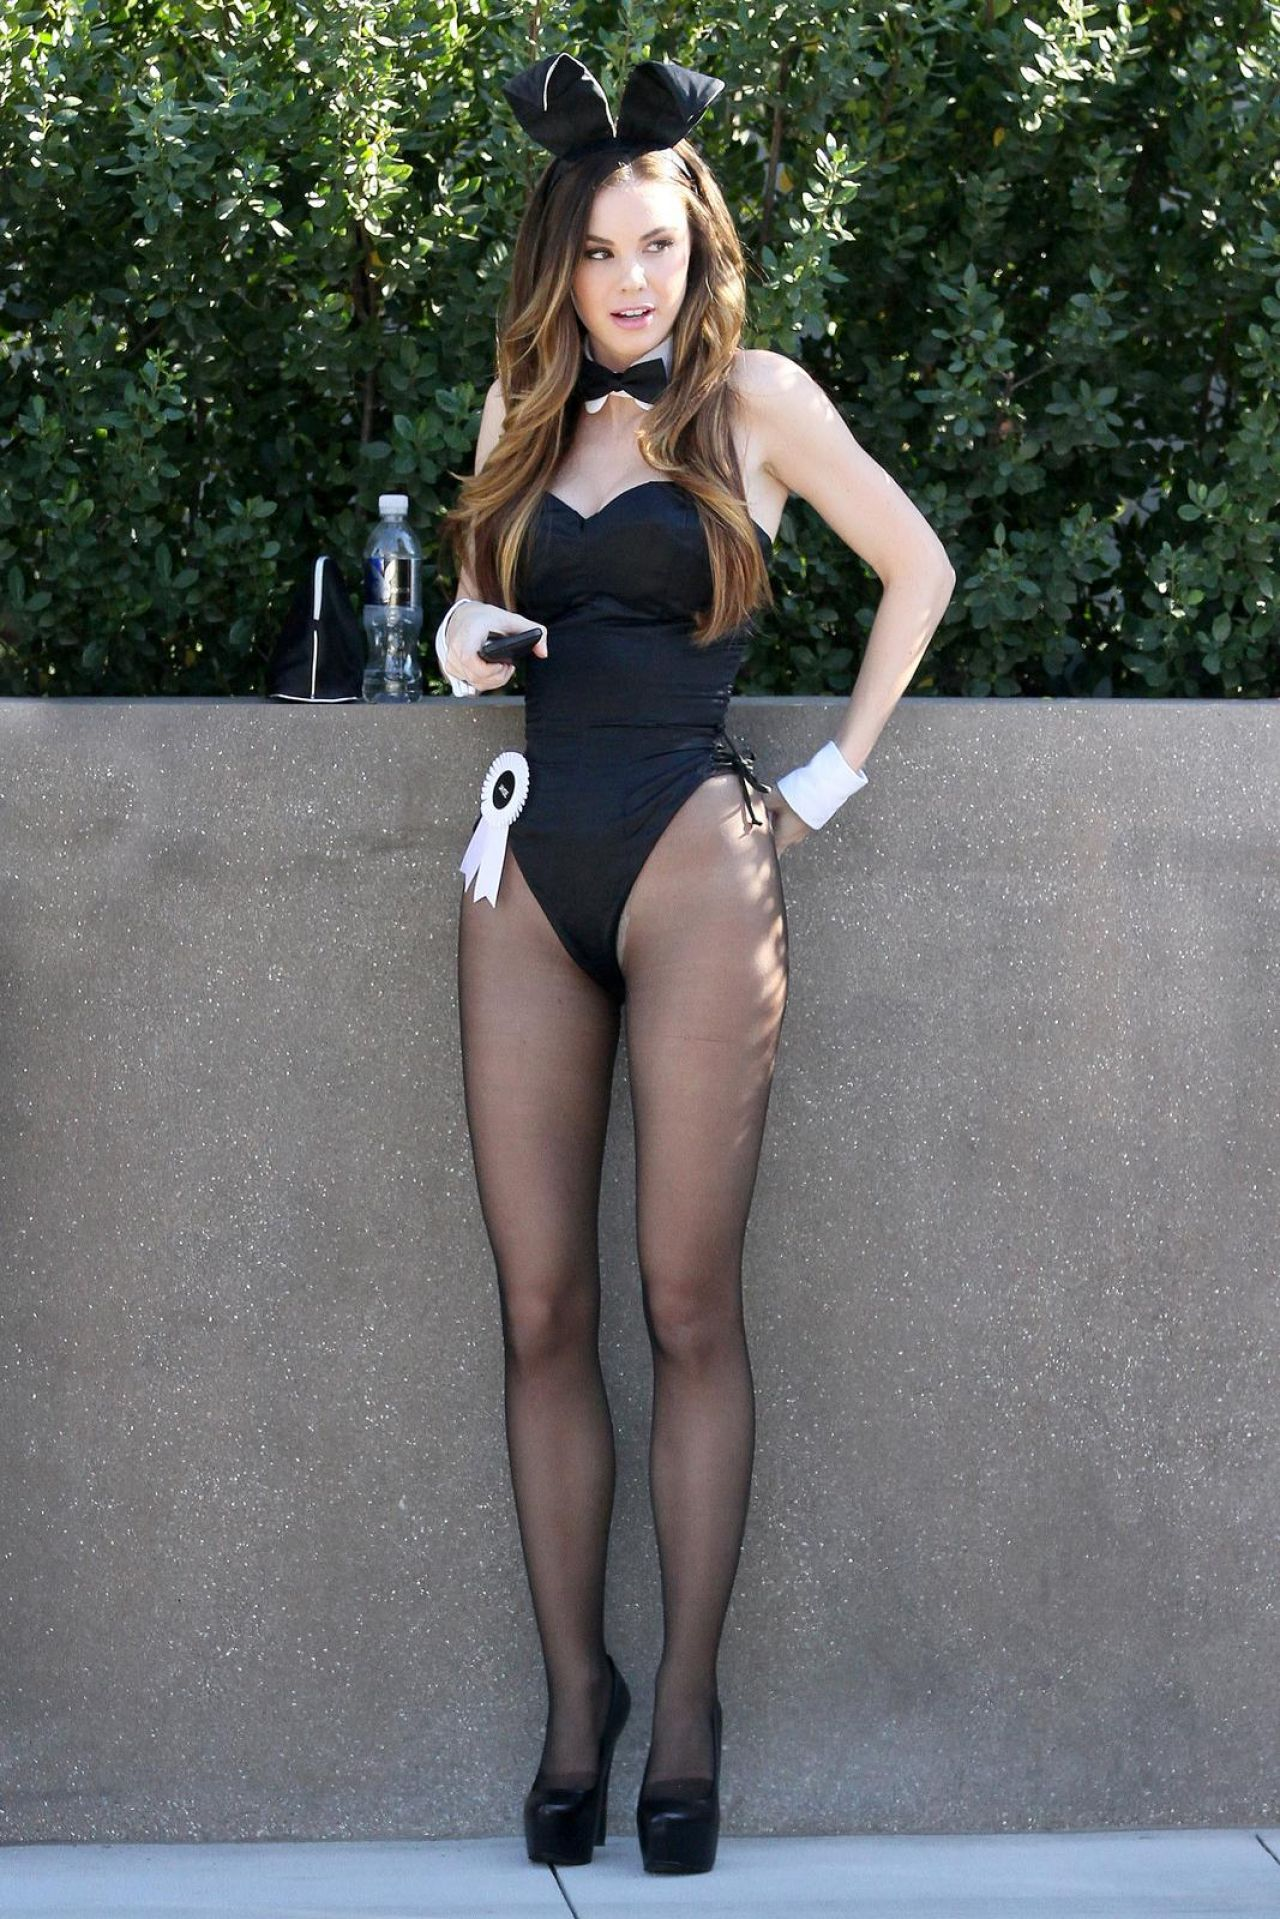 Jayde Nicole – Dressed as a Playboy Bunny, January 2014